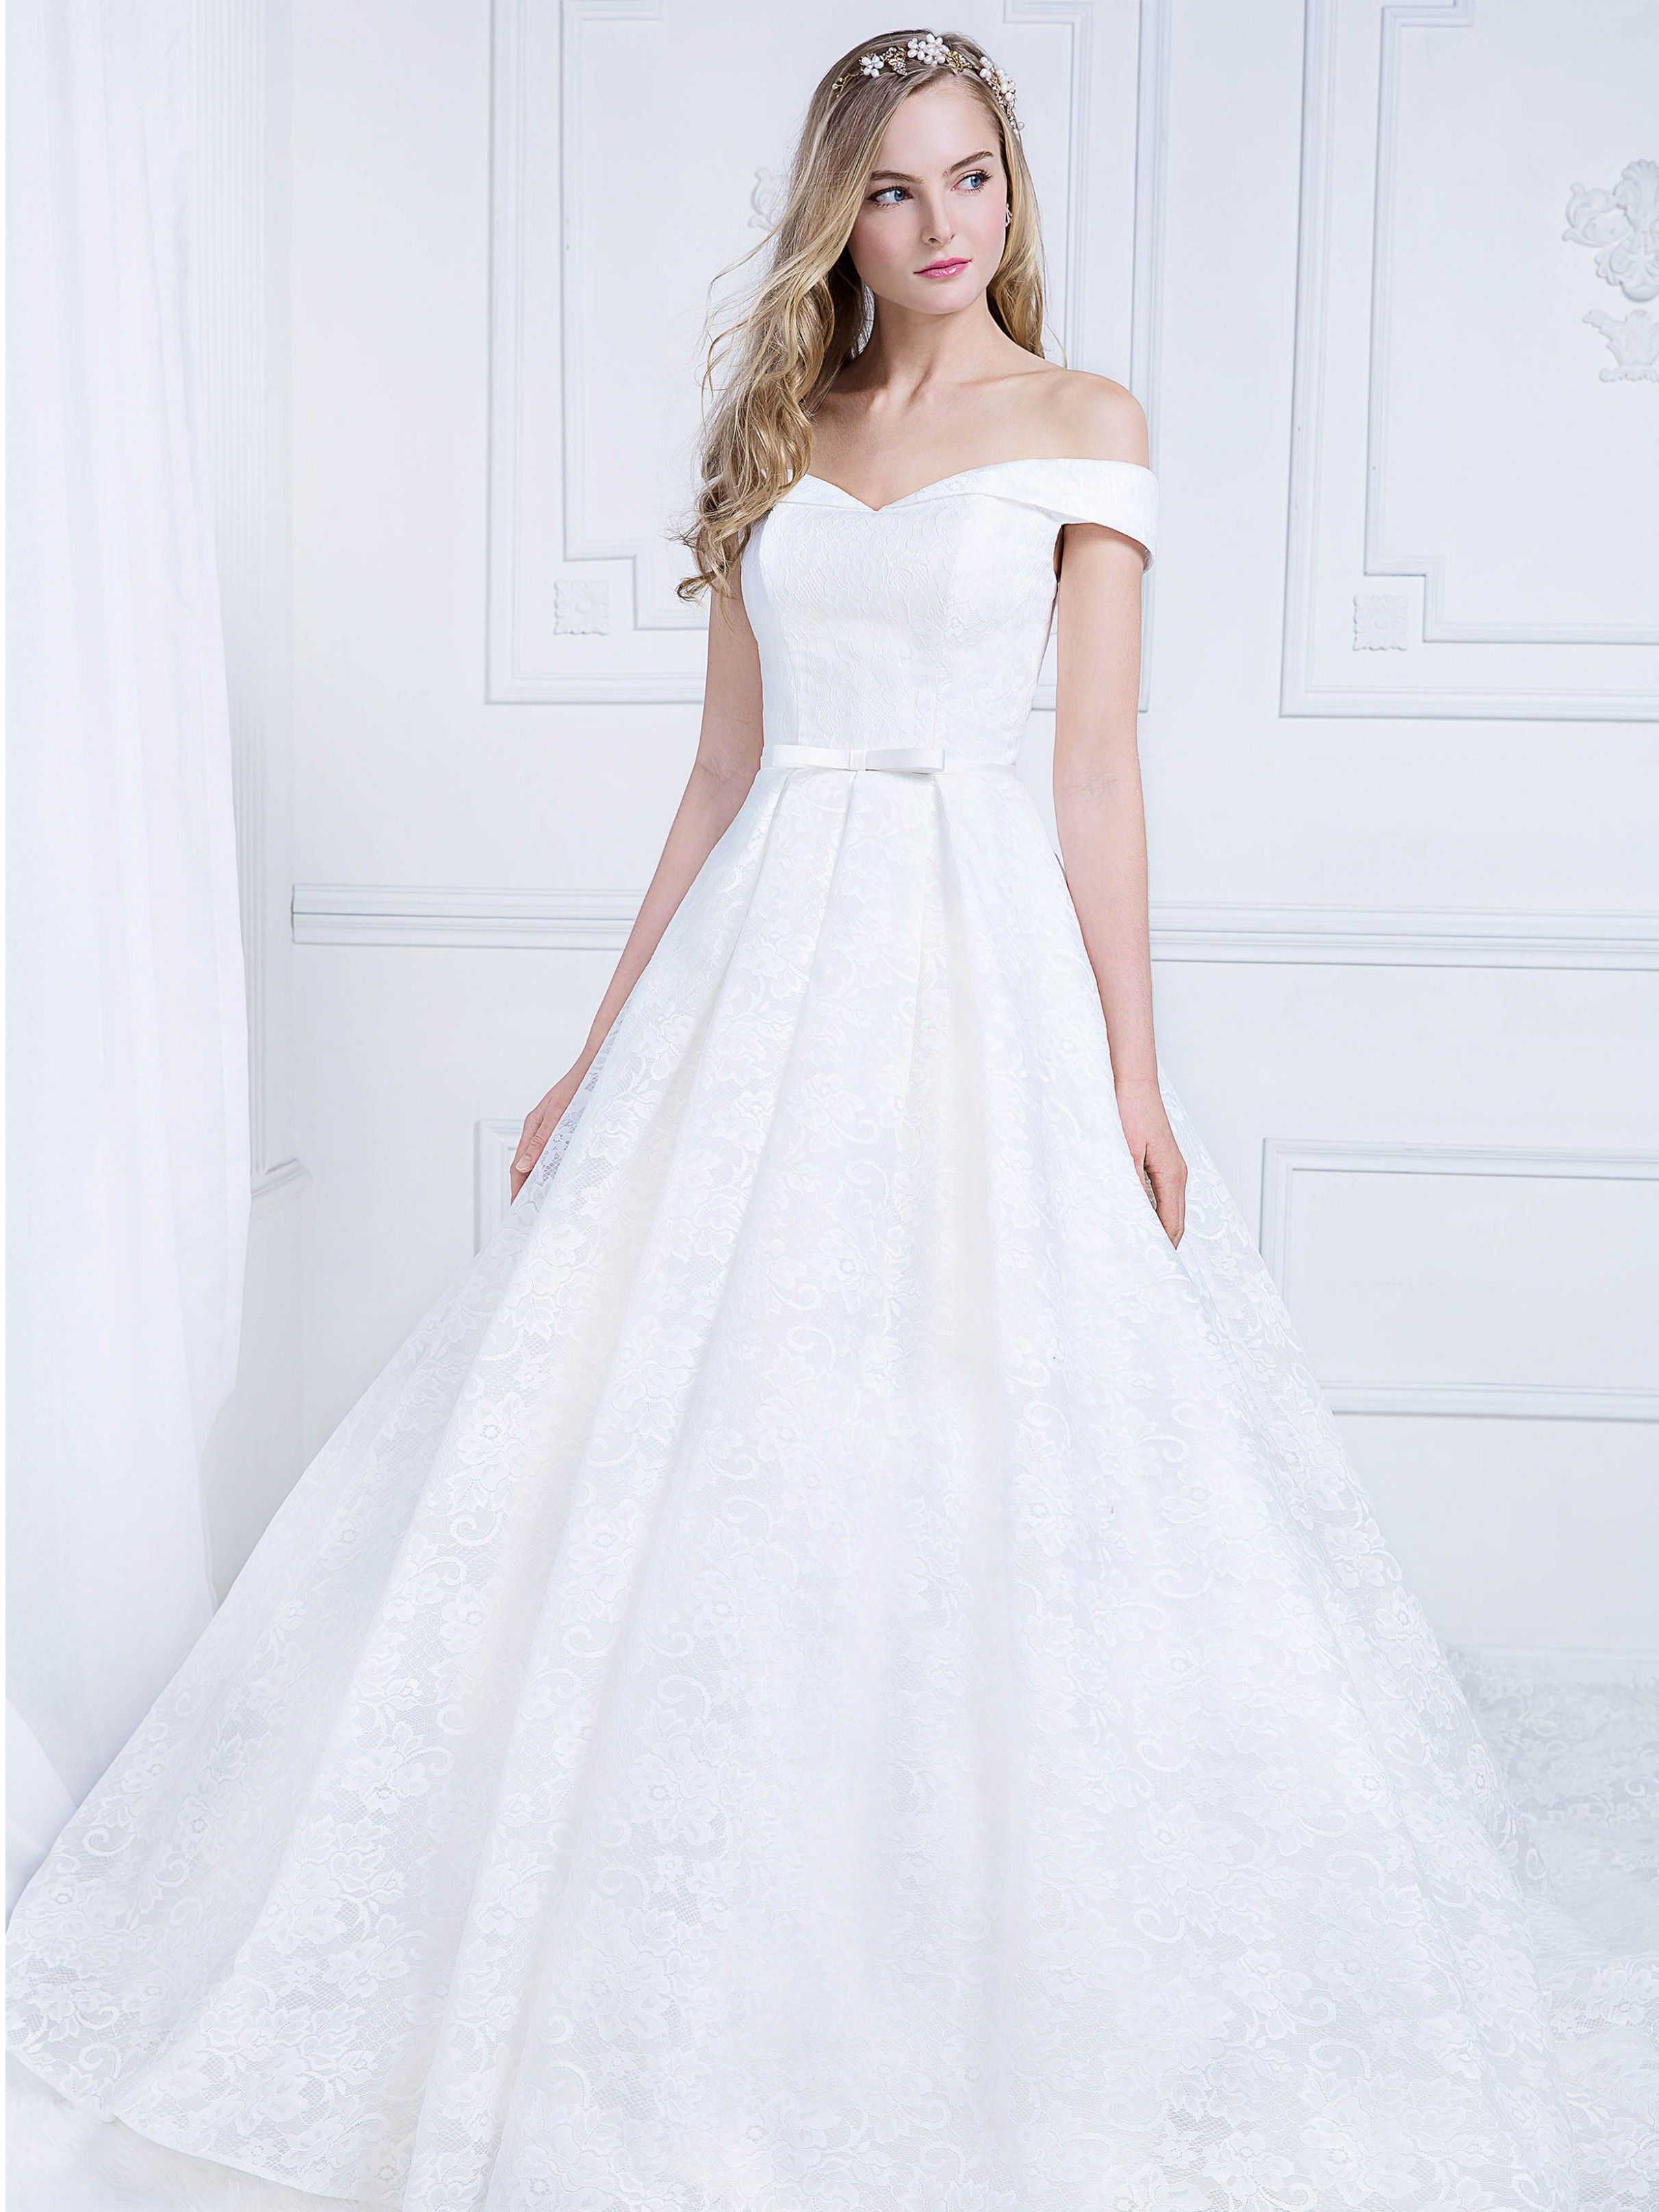 Over 20 Gown Picks from 20 Popular Types of Wedding Dress ...